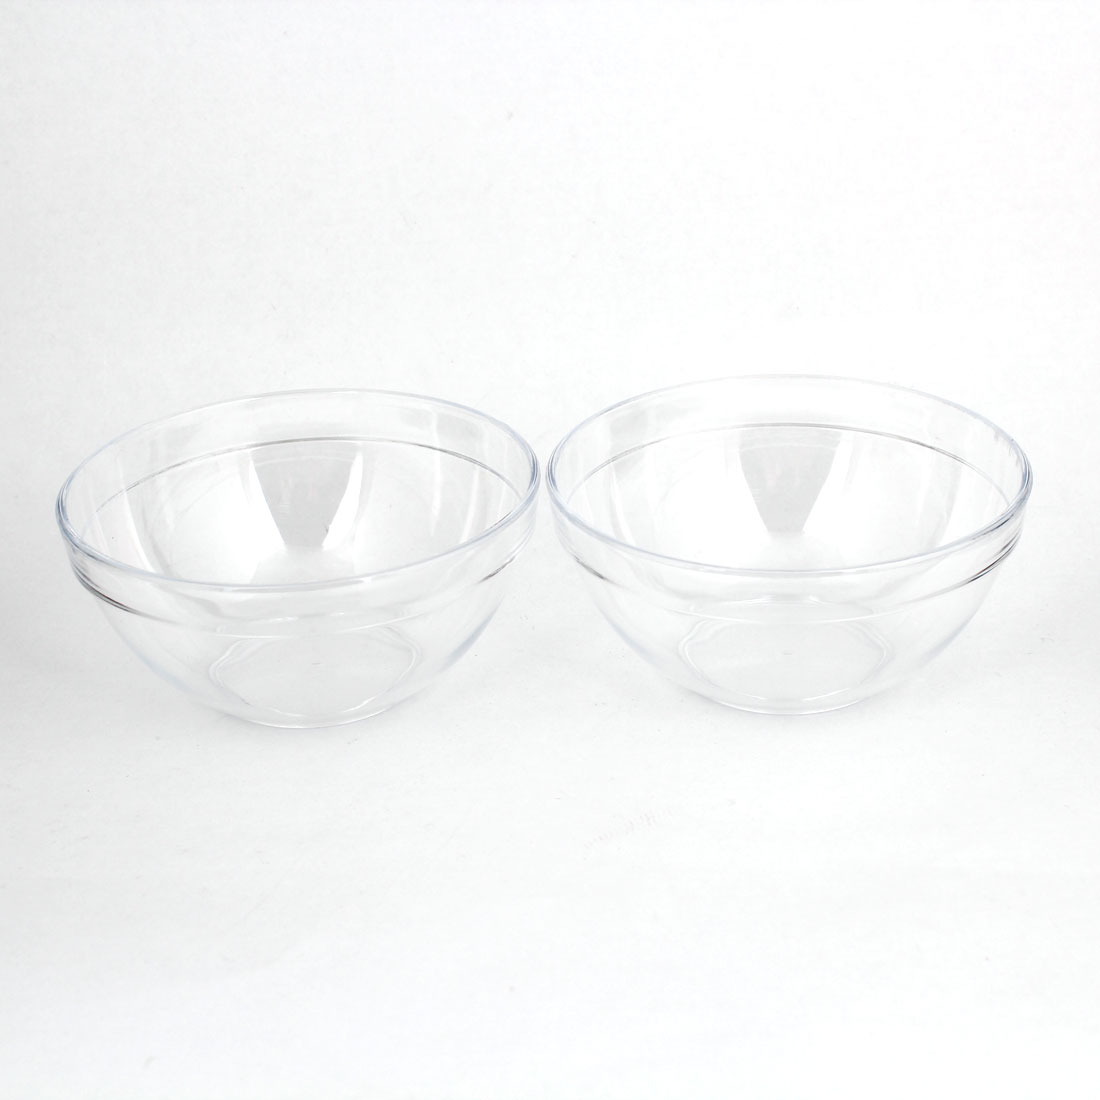 Women 9cm x 4.5cm DIY Facial Clear Plastic Mask Bowl Mixer Holder 2pcs